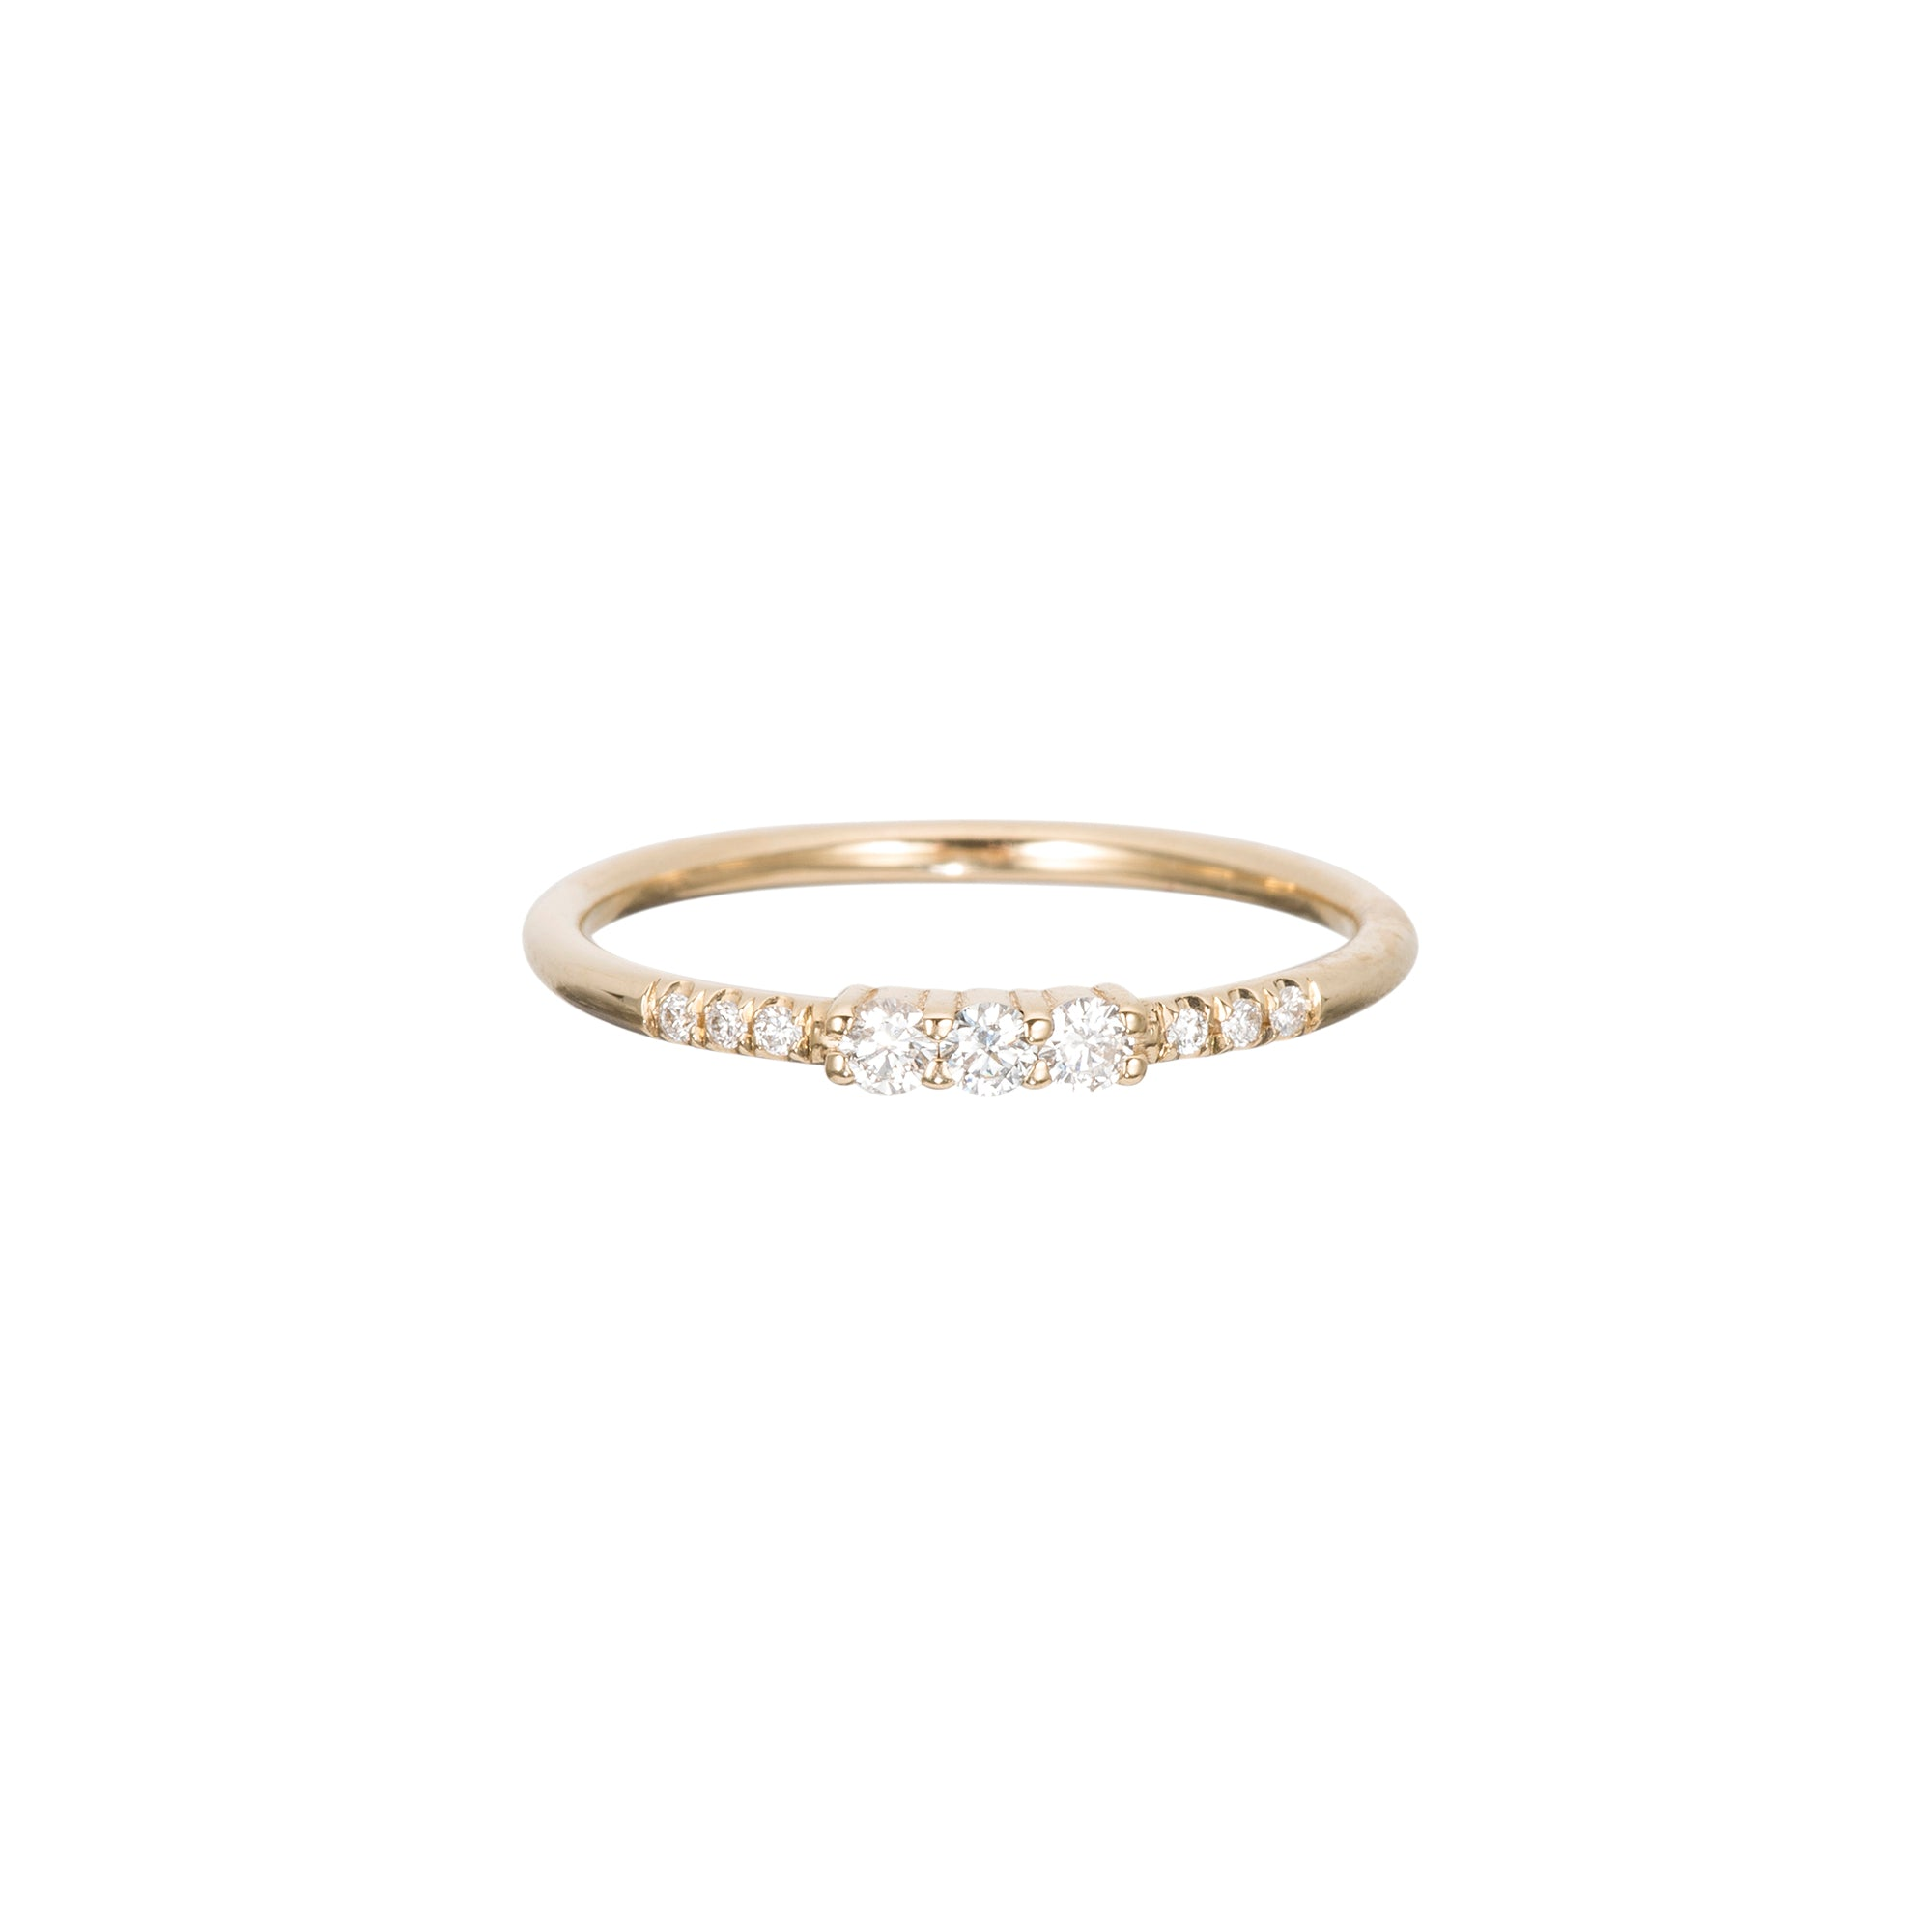 Gold Three Diamond Equilibrium Ring by Jennie Kwon for Broken English Jewelry